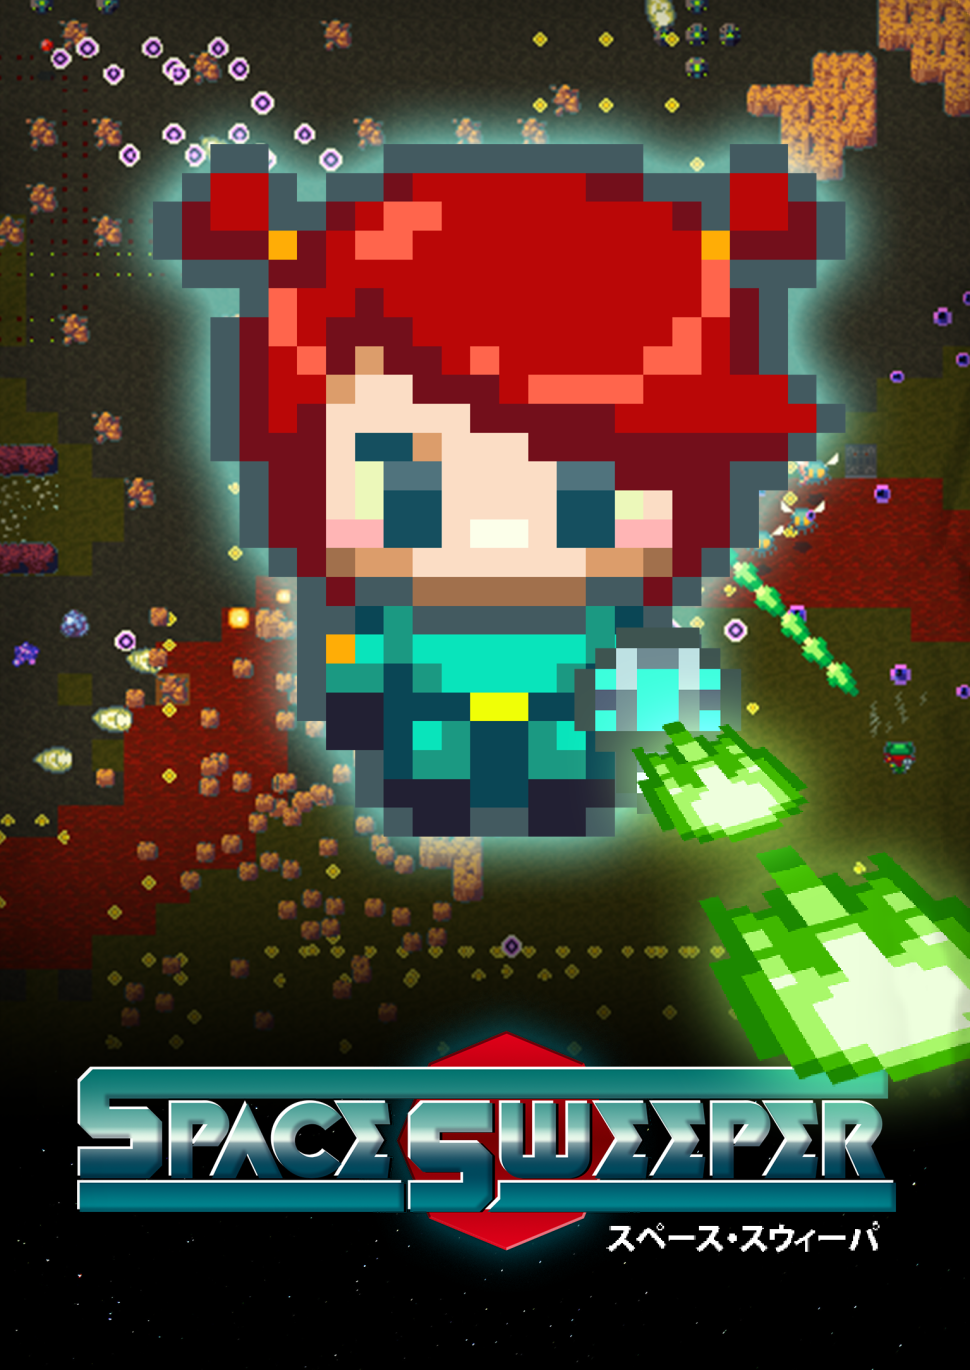 Space Sweeper, from Shinra Technologies.